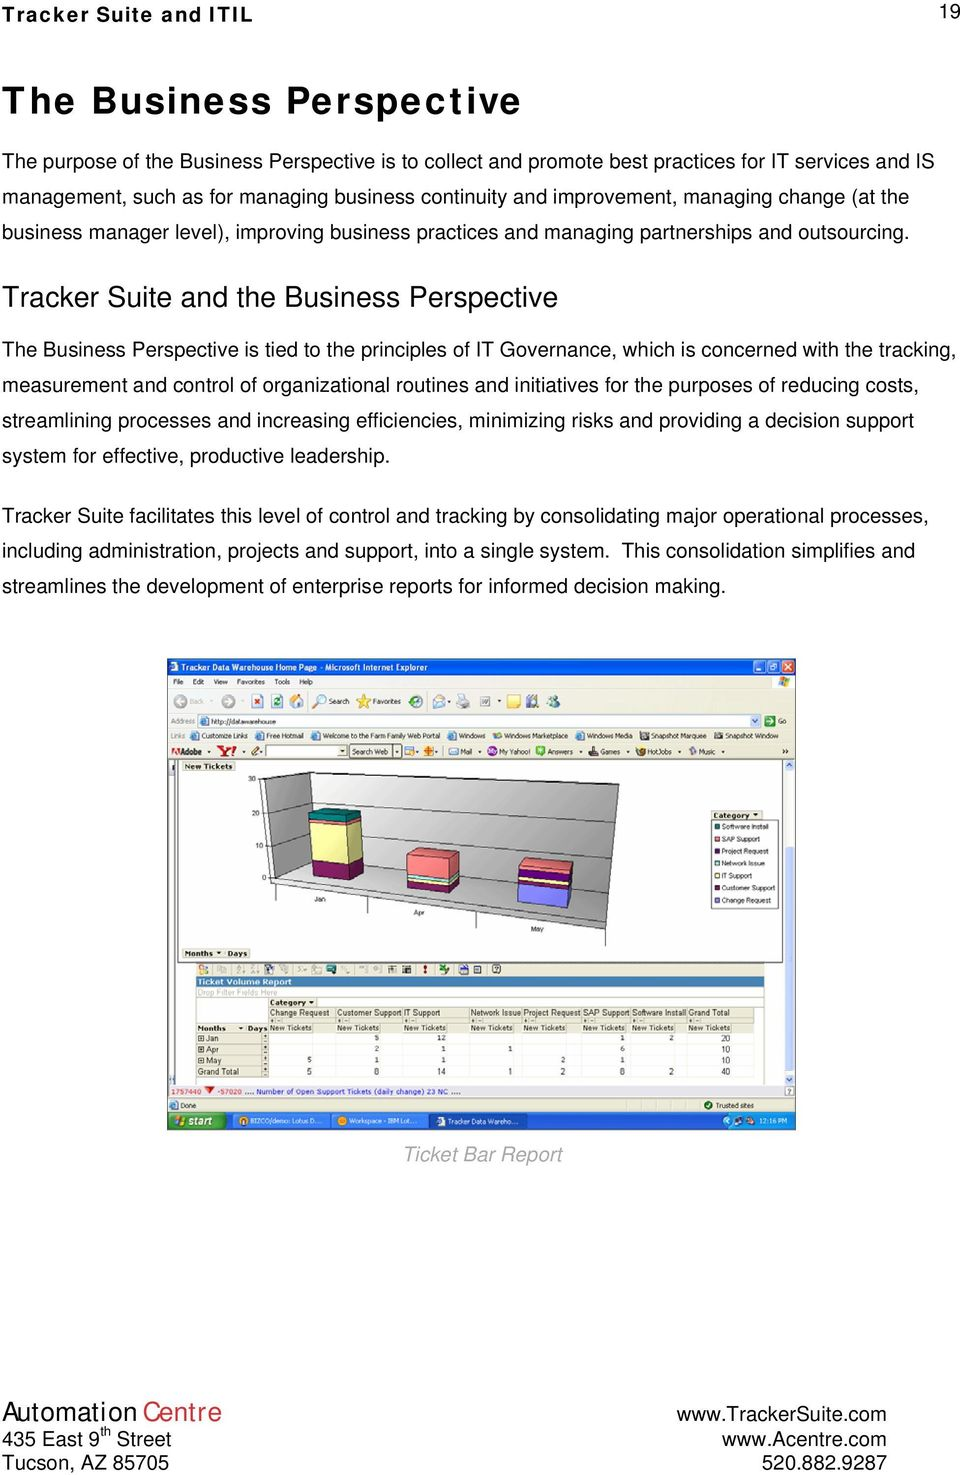 Tracker Suite and the Business Perspective The Business Perspective is tied to the principles of IT Governance, which is concerned with the tracking, measurement and control of organizational